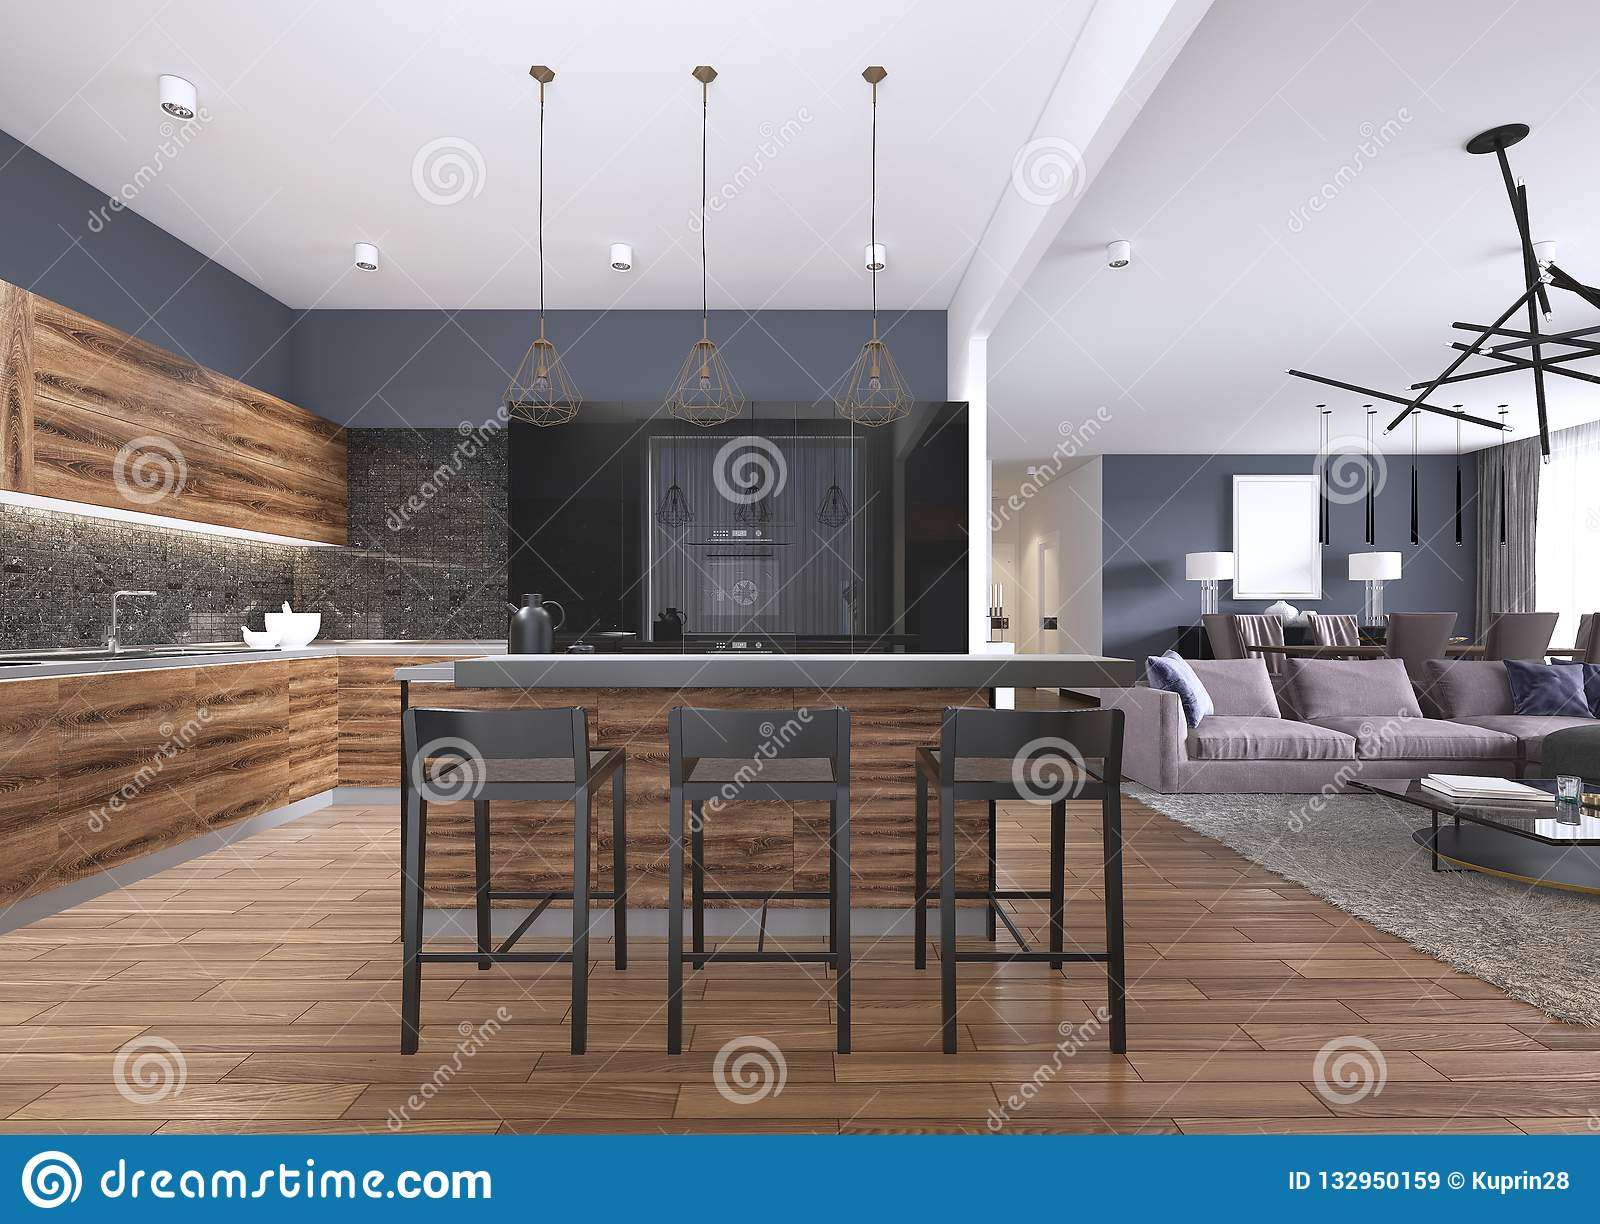 Modern Kitchen With Wood And Gloss Black Kitchen Cabinets Kitchen Island With Bar Stools Stone Countertops Built In Appliances Stock Illustration Illustration Of Clean Cabinets 132950159